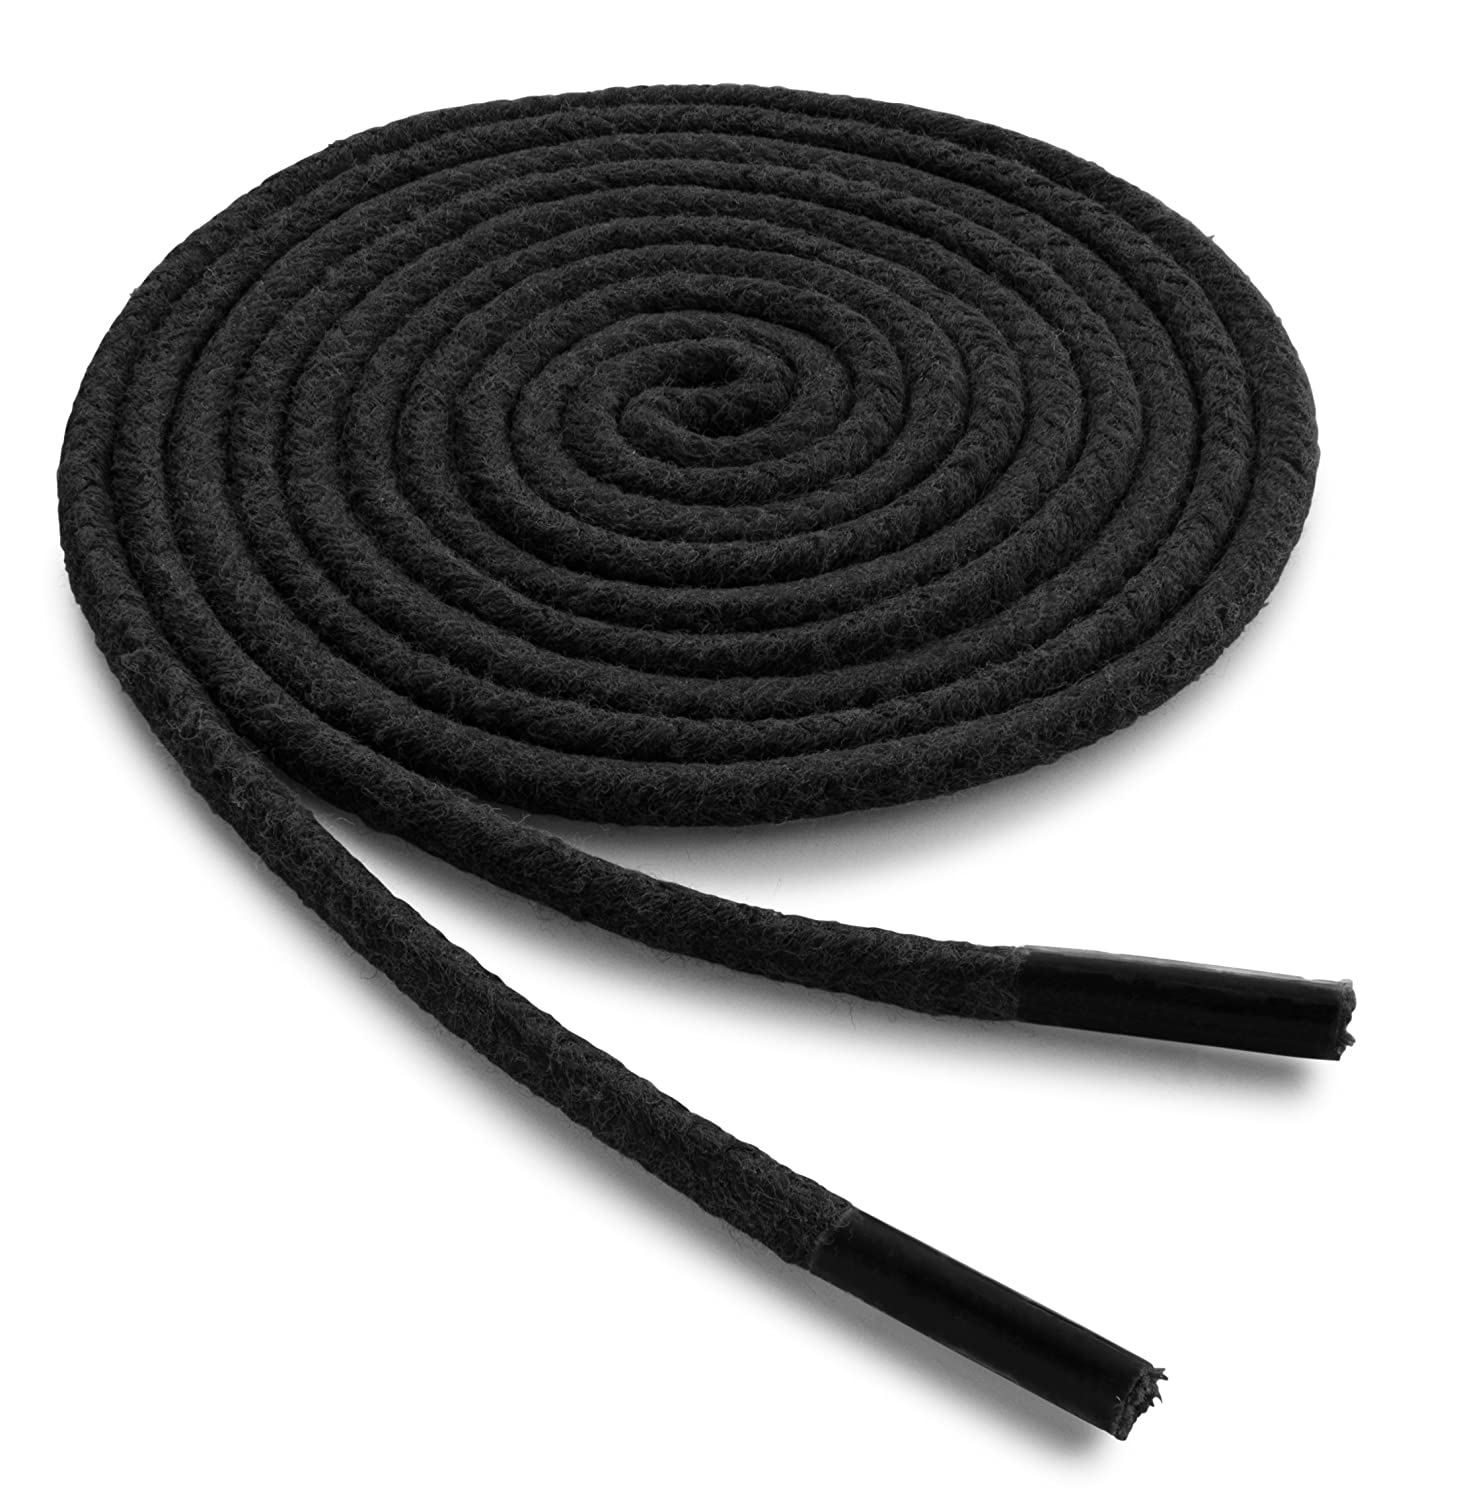 9bd461af536e3 Amazon.com: OrthoStep Waxed Dress Round Shoelaces - Extra Durable - Shoe  and Boot Laces 2 Pair Pack - Made in the USA: Shoes